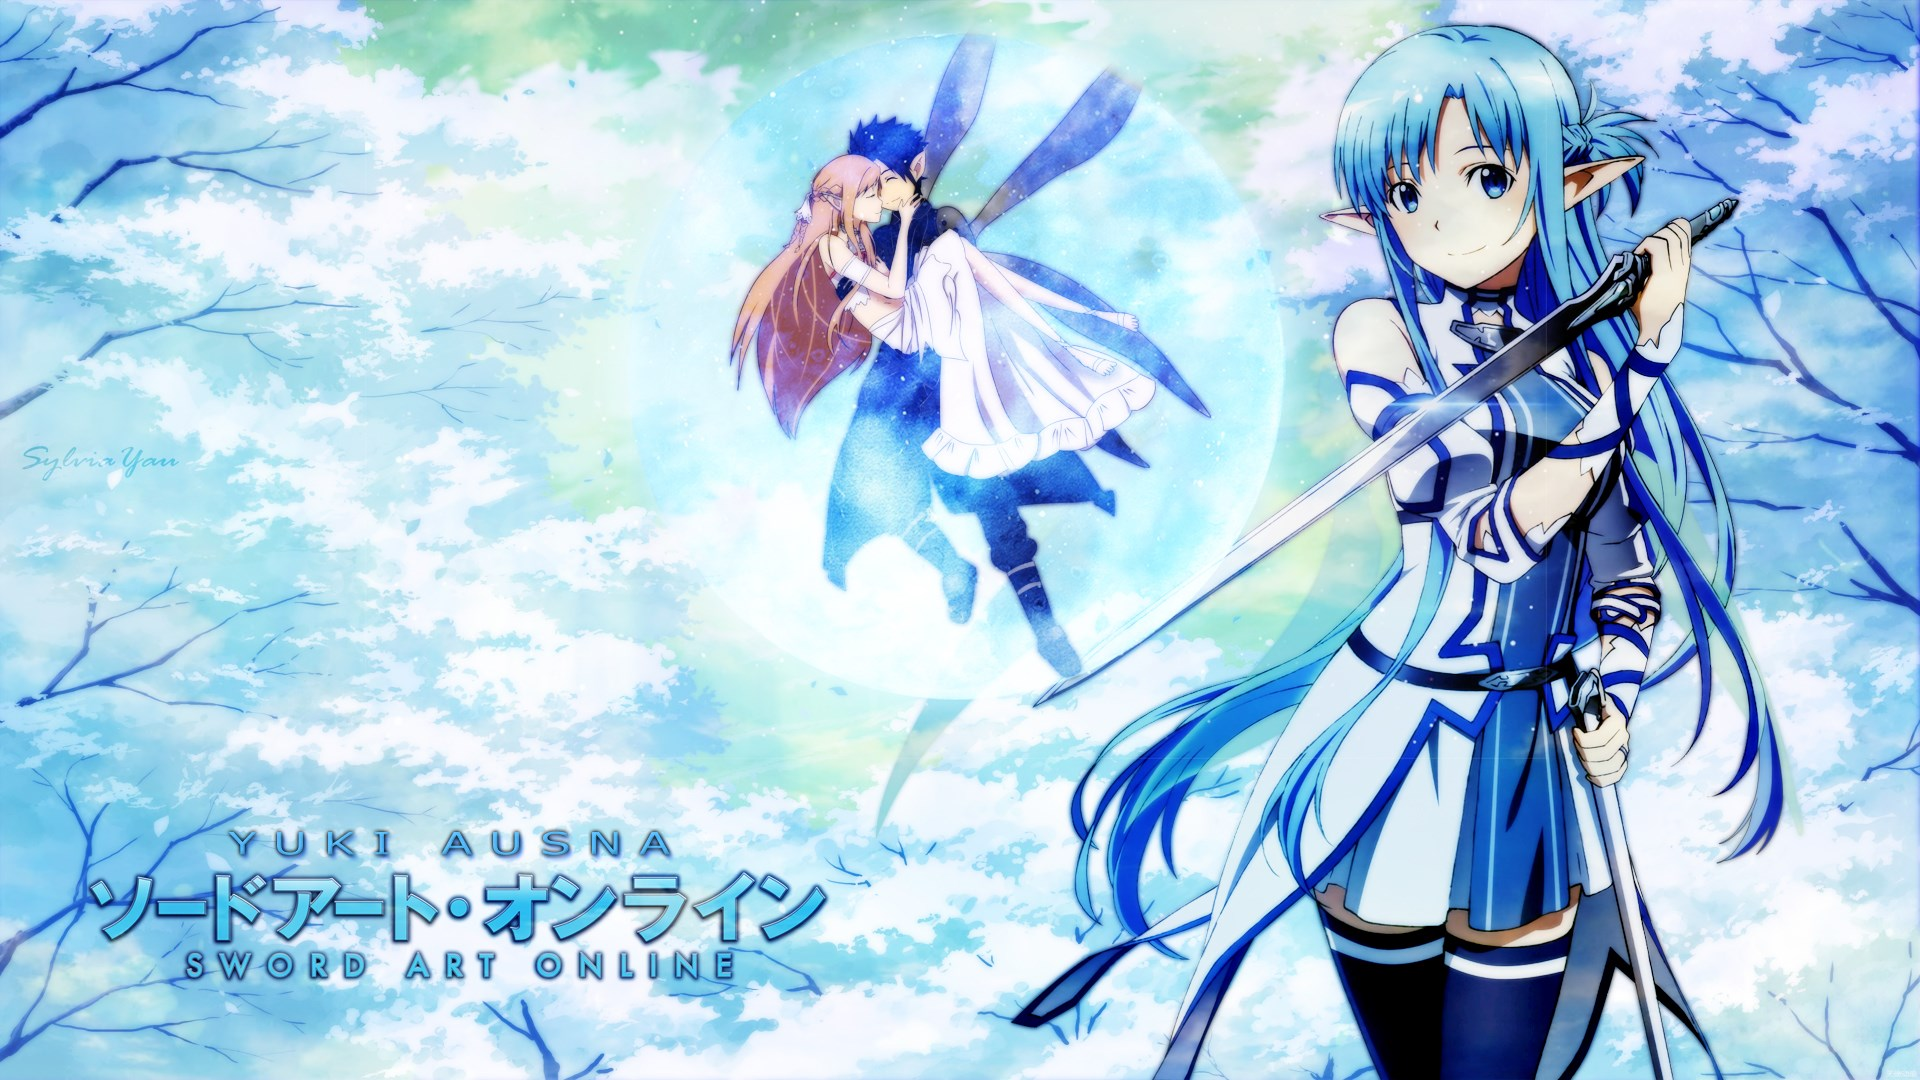 1920x1080-high-resolution-widescreen-sword-art-online-ii-wallpaper-wpc9201092